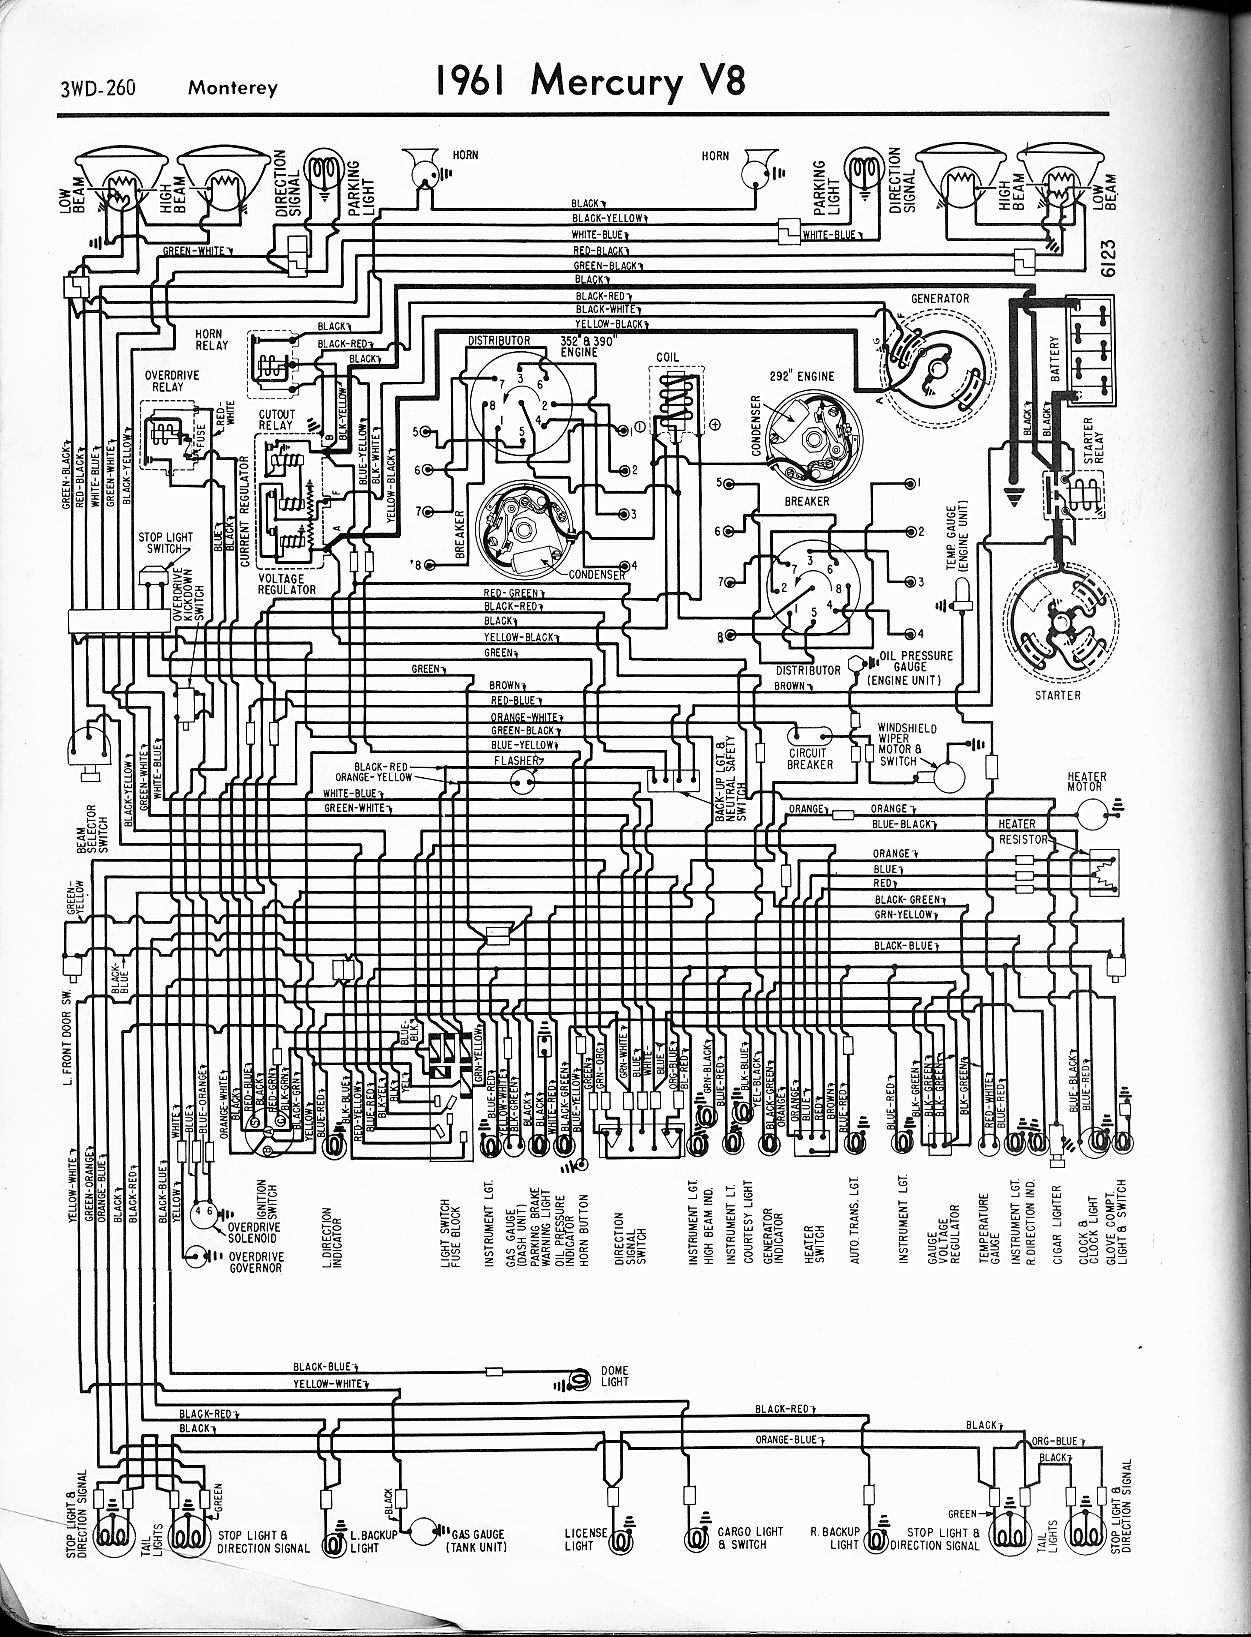 1966 mercury wiring diagram 1966 wiring diagrams online 1961 v8 monterey 1950 mercury wiring diagram